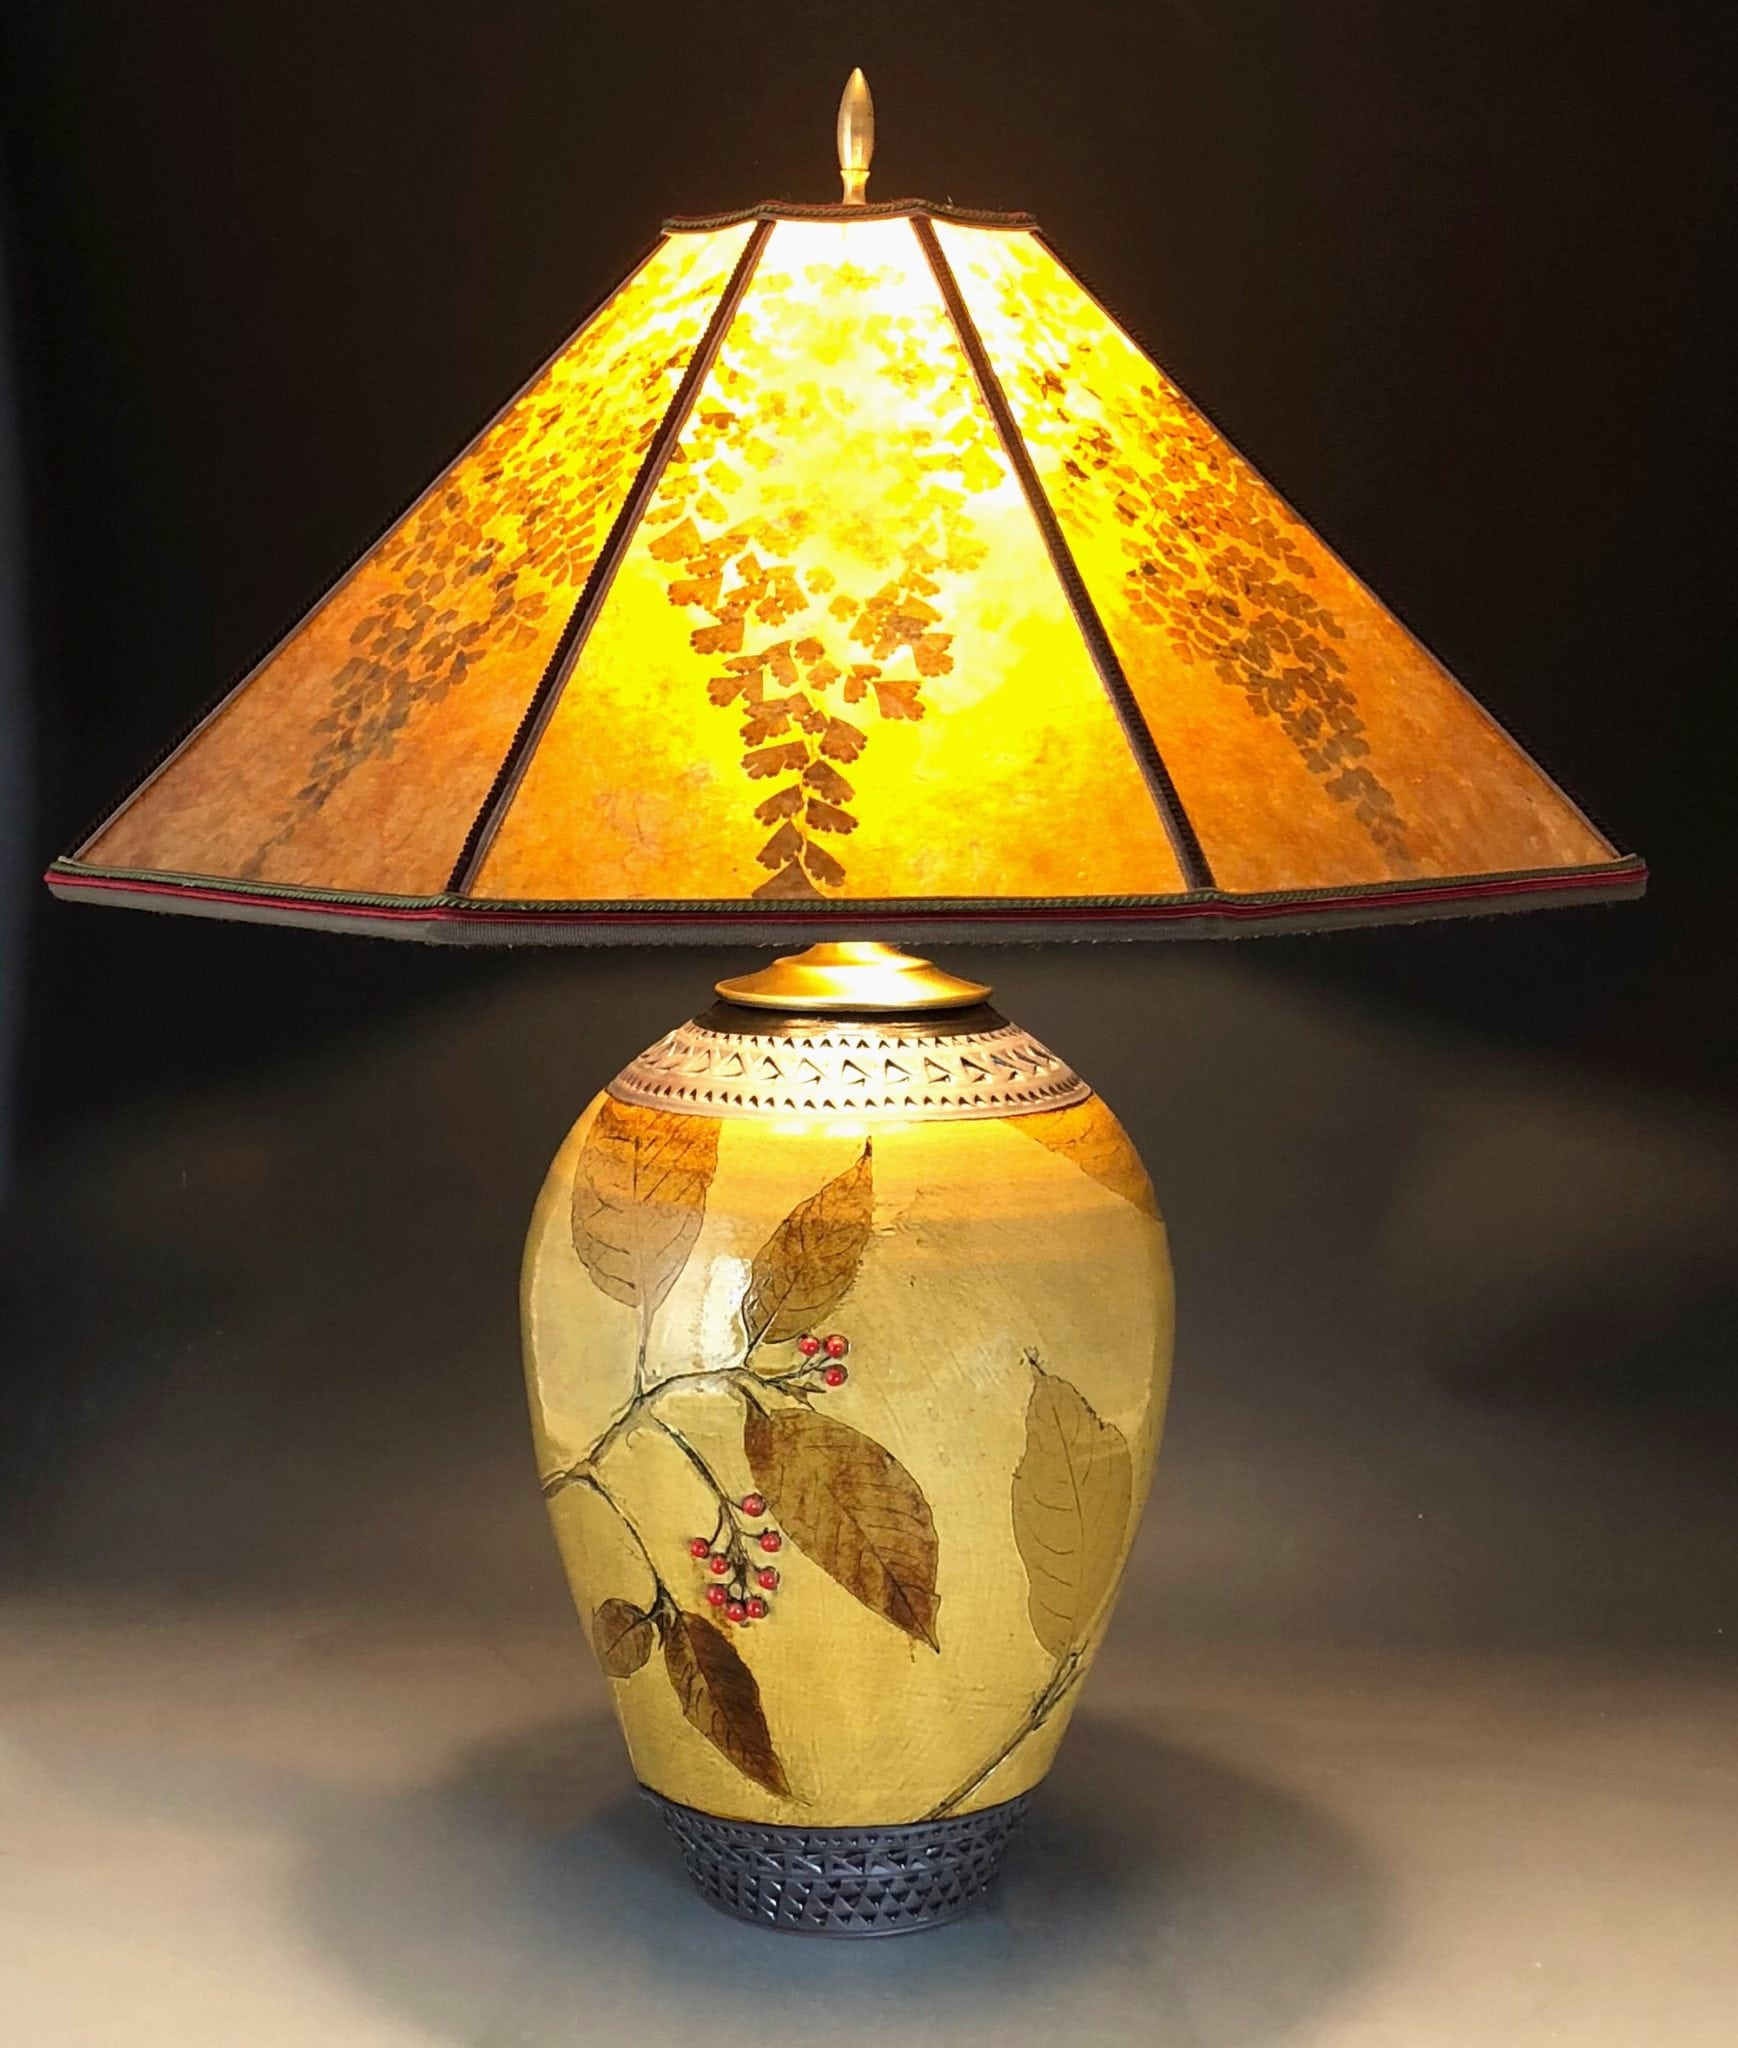 Large amber lamp with mica shade pokeweed suzanne crane blog ordering shows events contact aloadofball Images